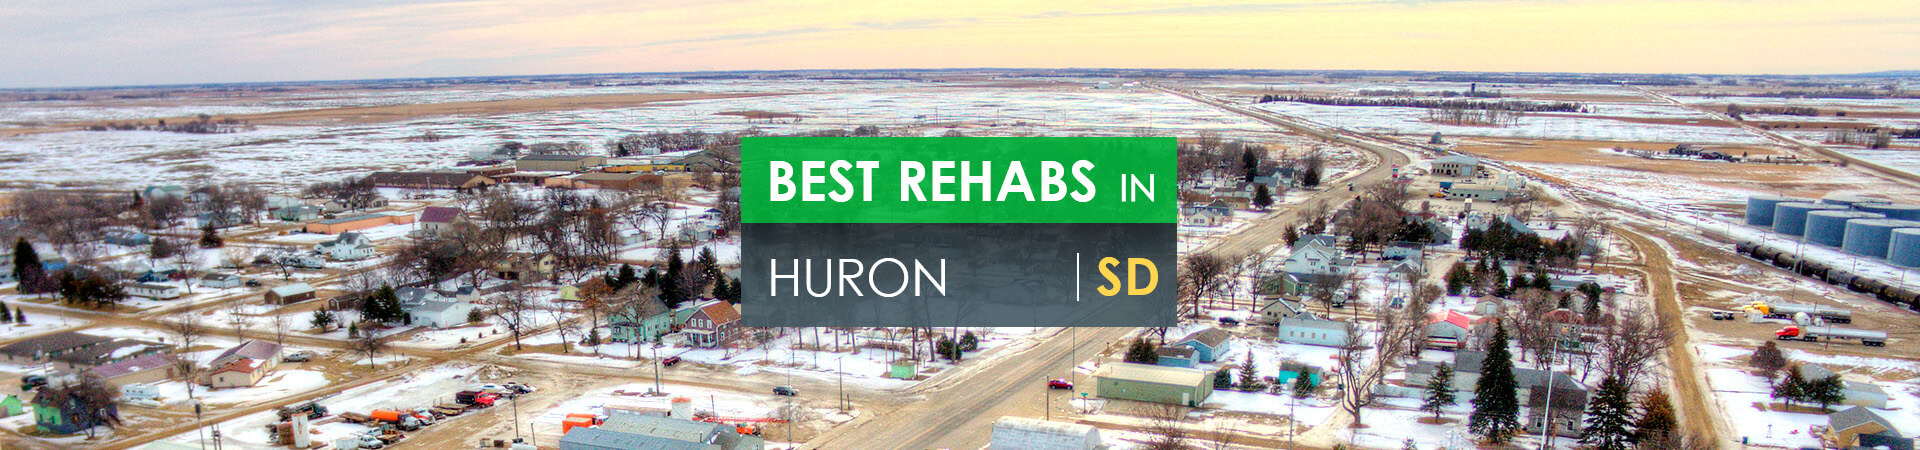 Best rehabs in Huron, SD